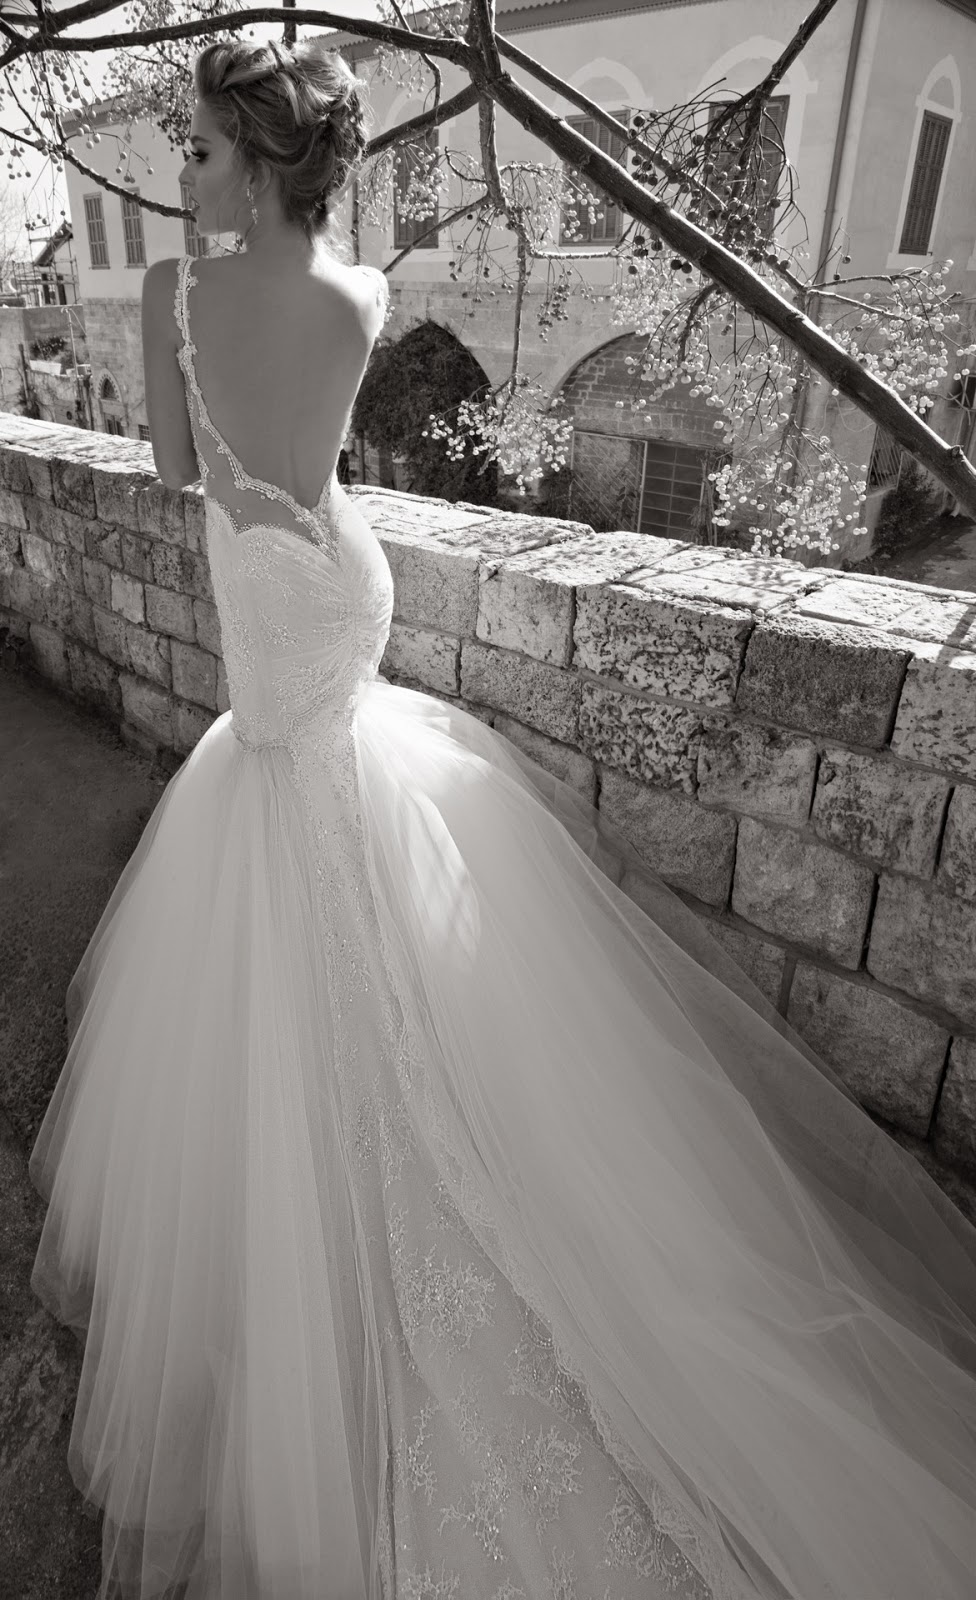 Galia Lahava wedding gown